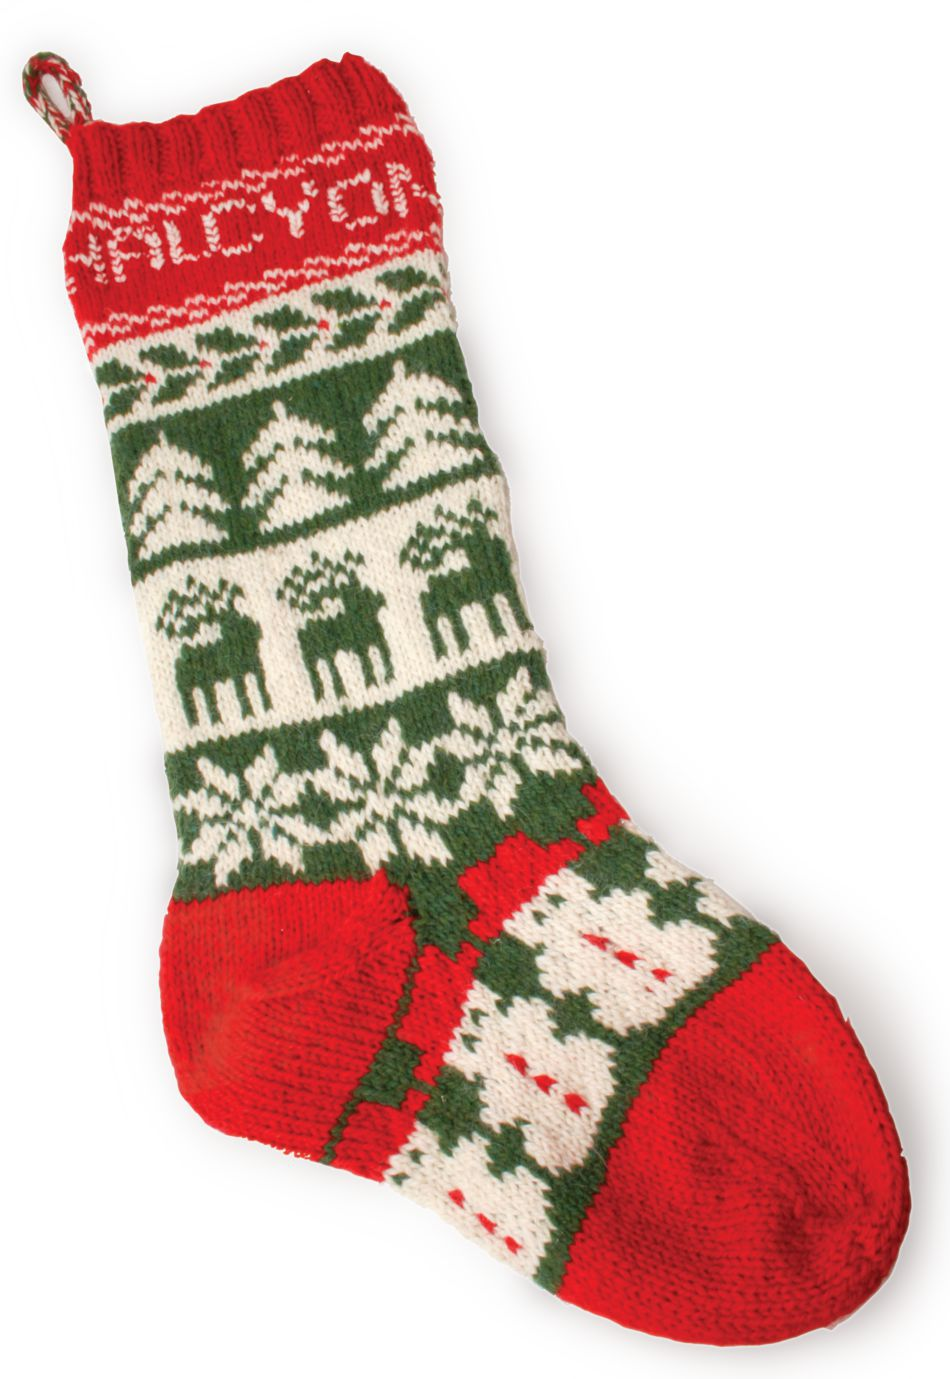 Halcyon Christmas Stocking Kit, Knitting Kit - Halcyon Yarn